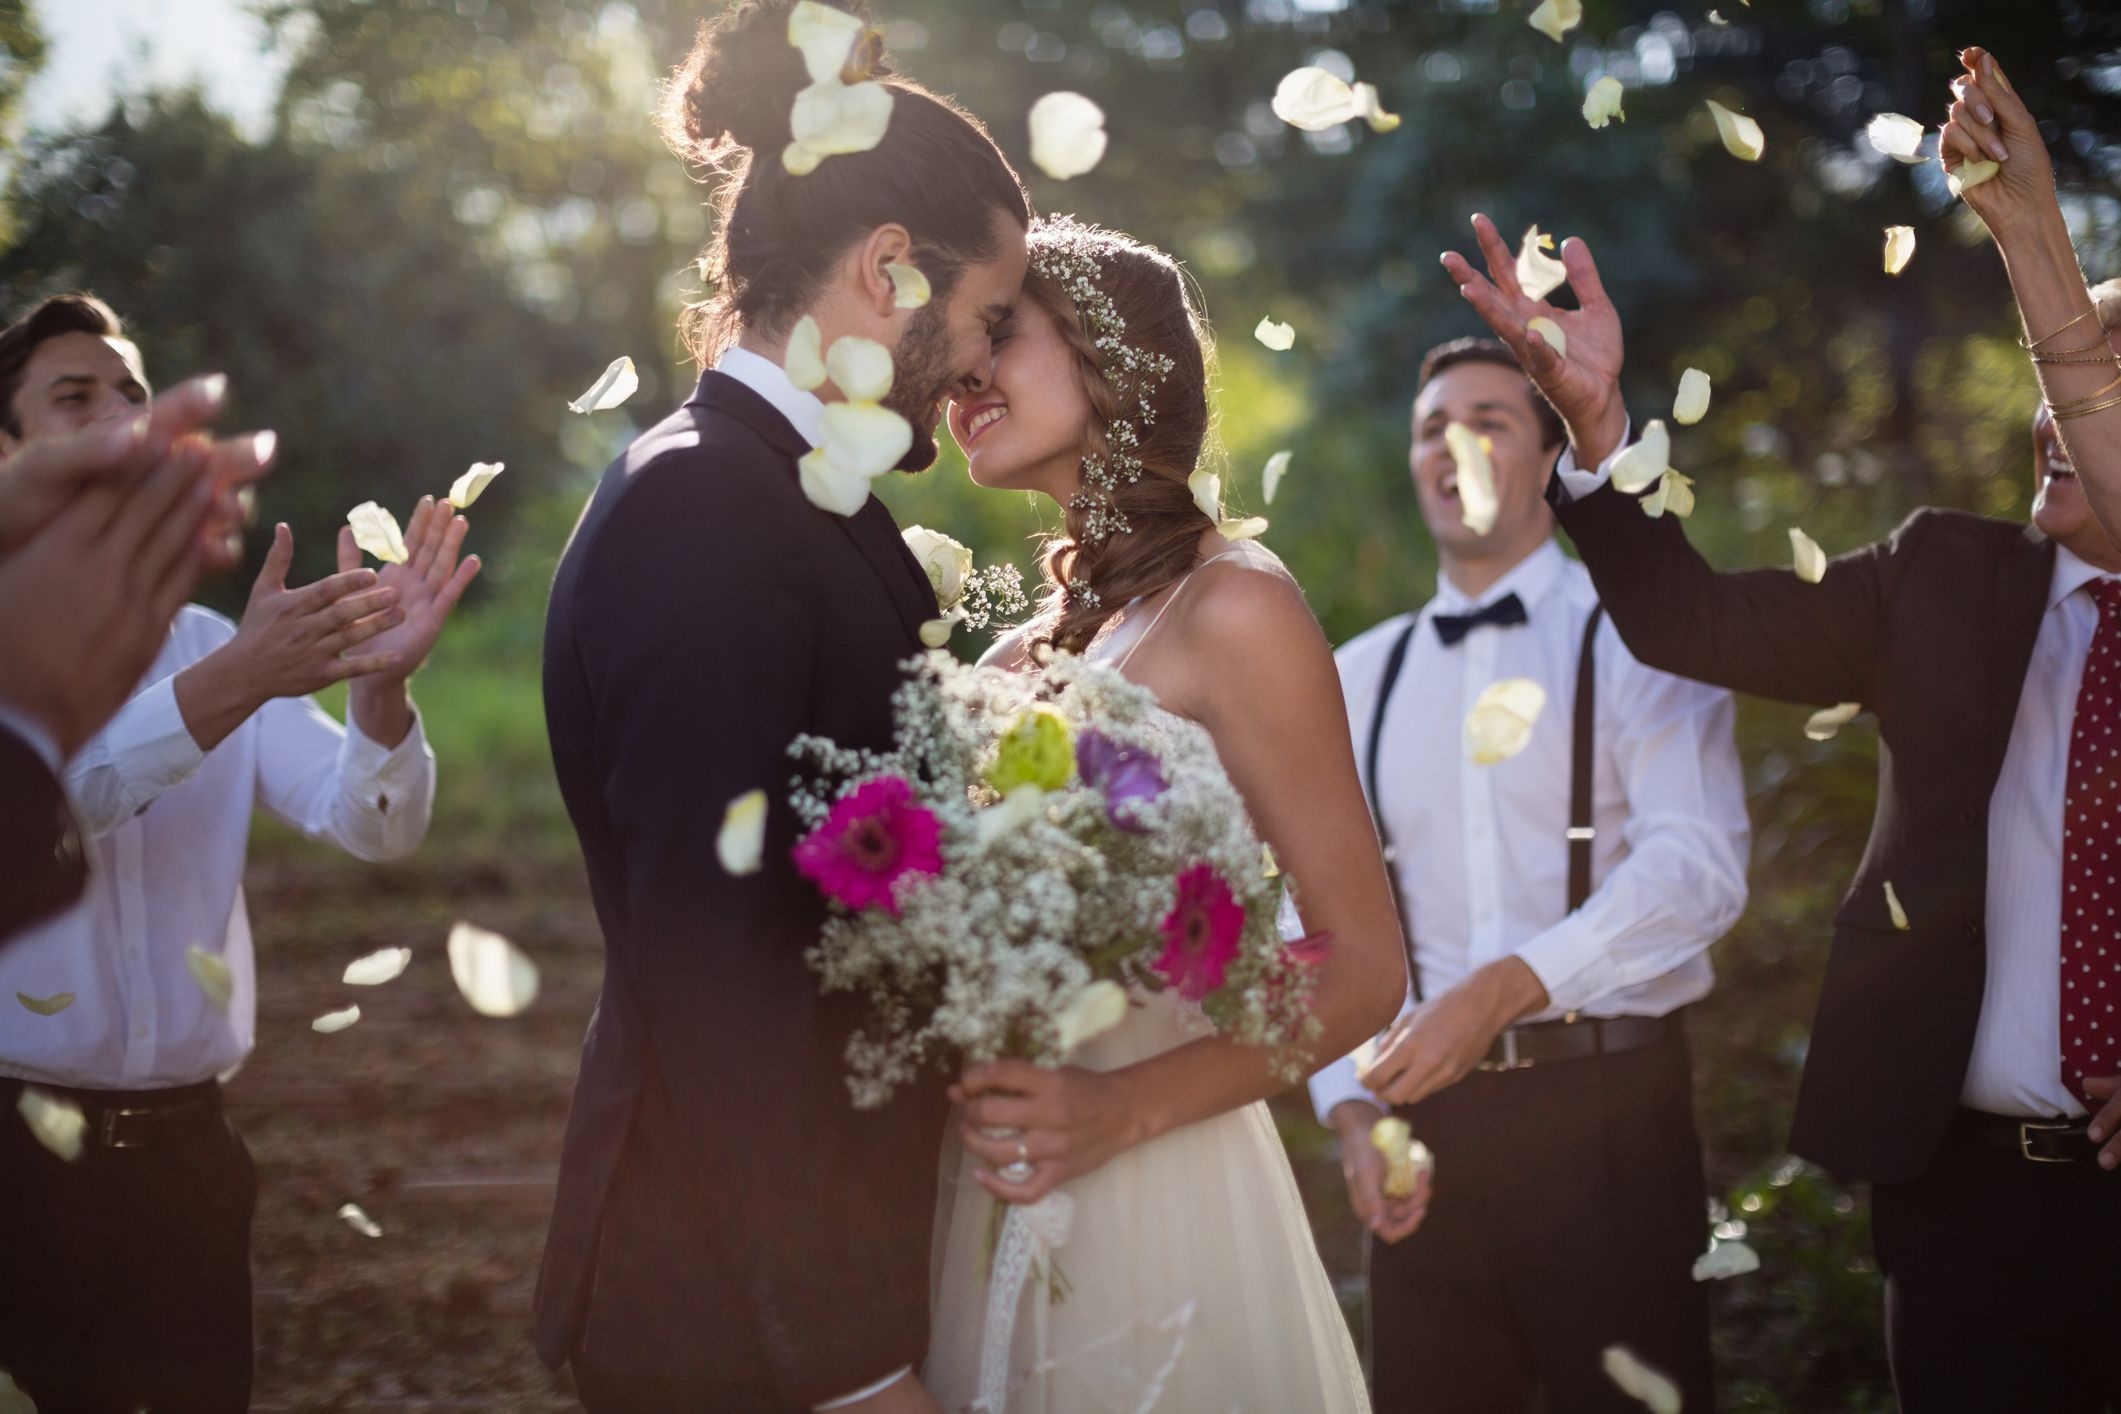 How to Get Married in Tennessee